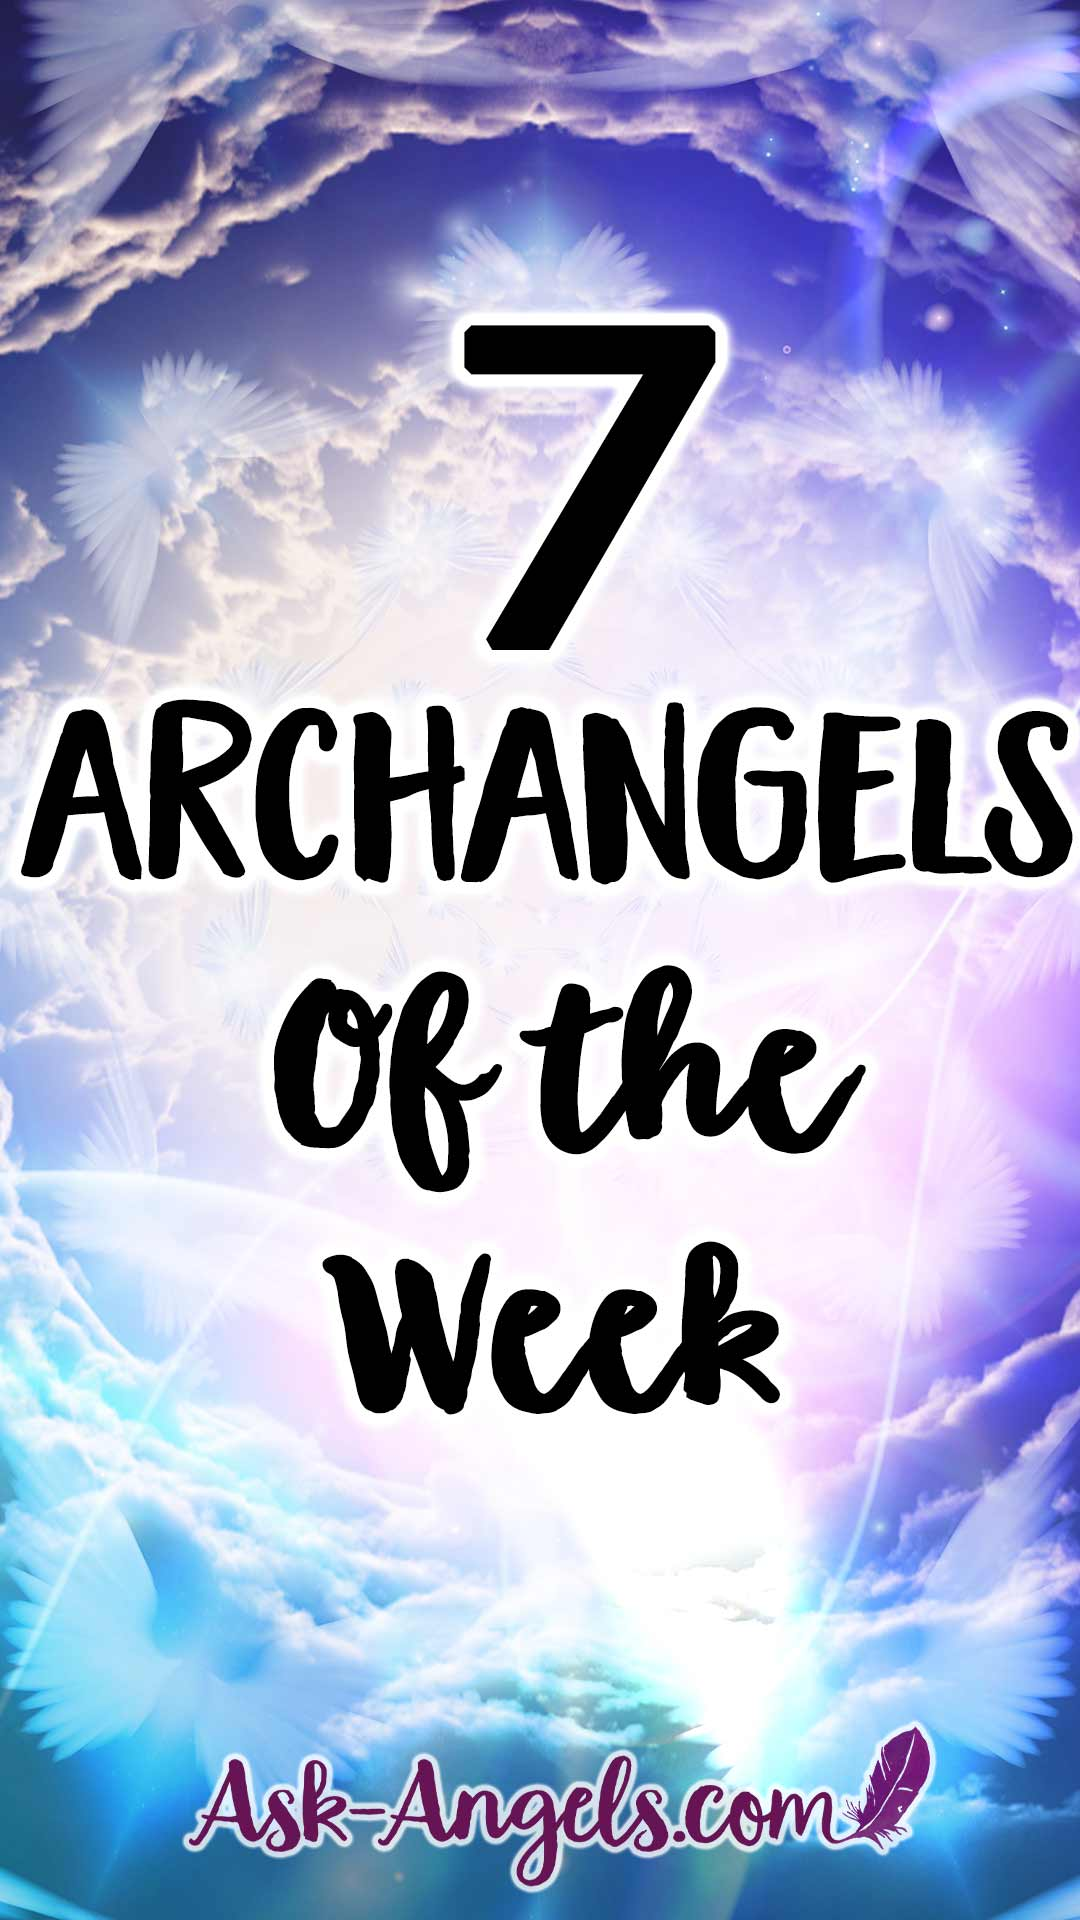 7 Archangels of the Week